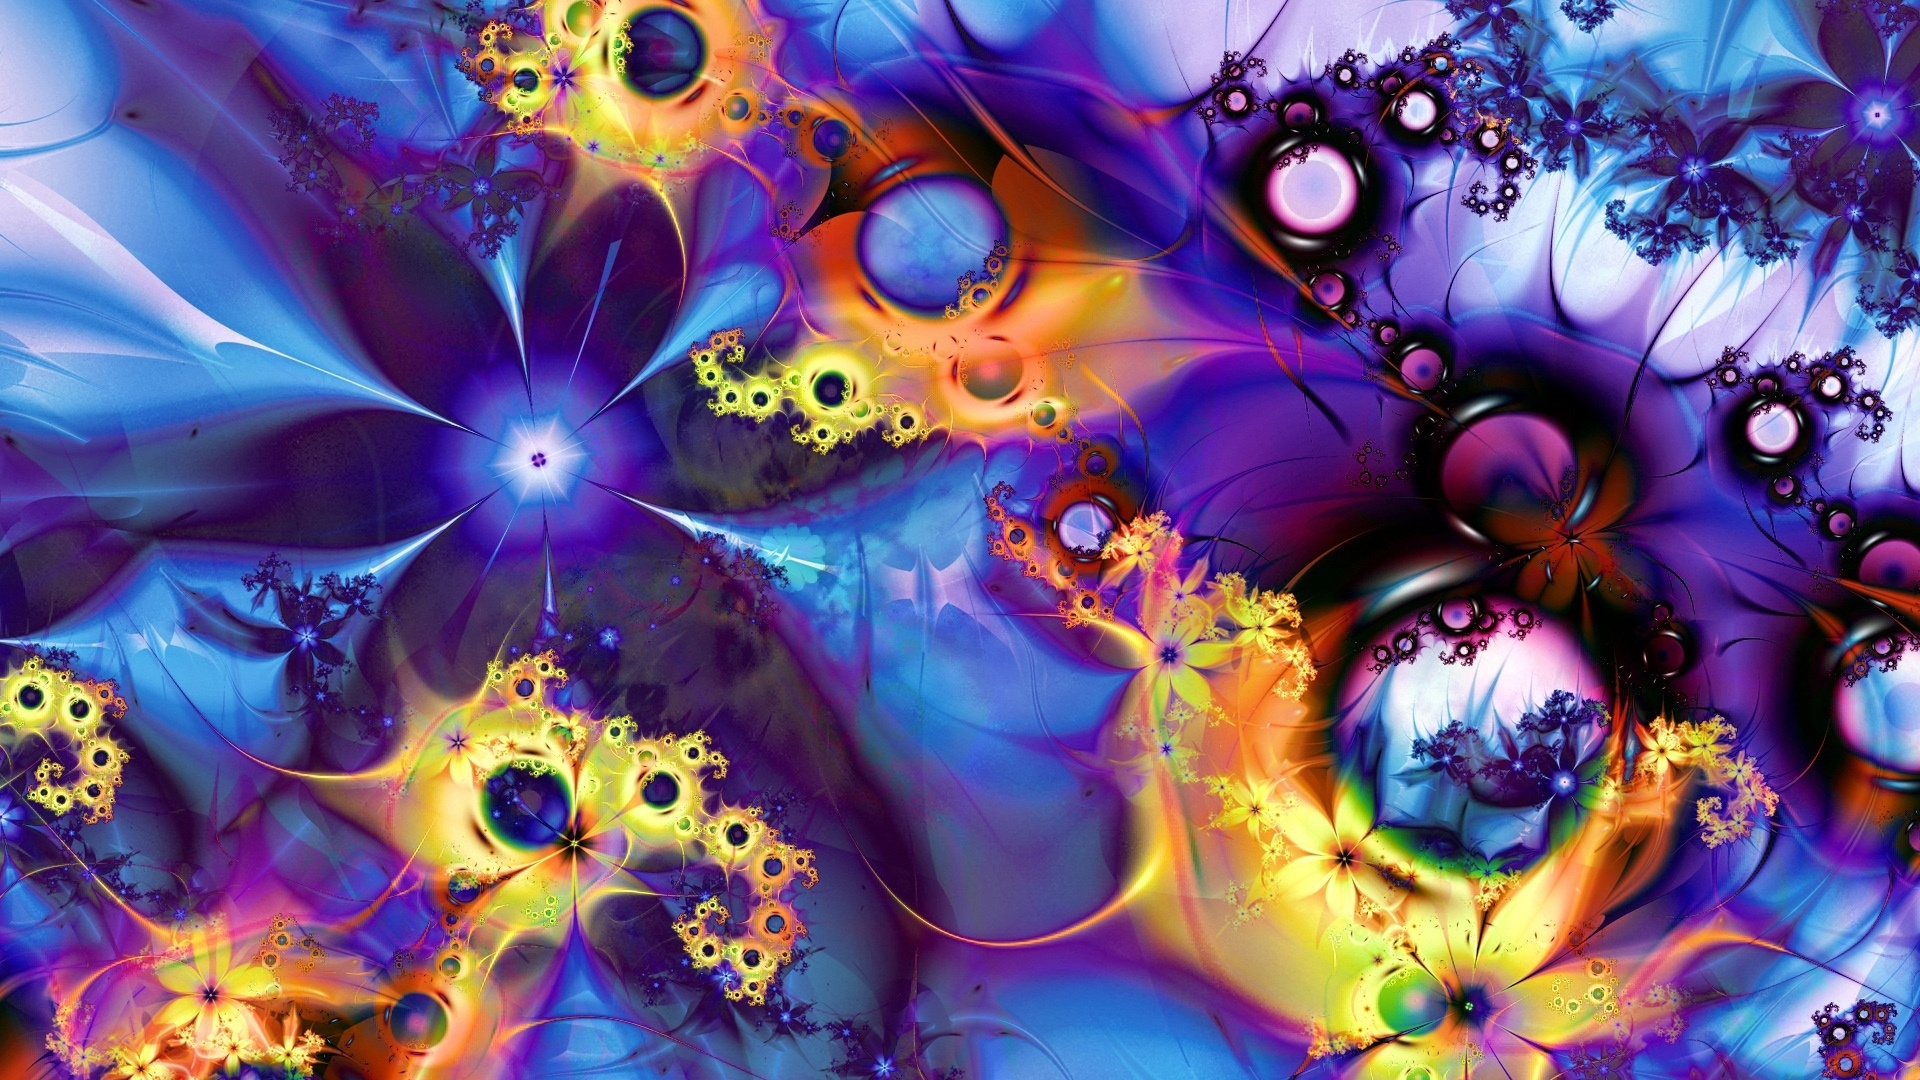 3d Fractal Wallpapers Hd Abstract Colorful Fractal With Many Flowers